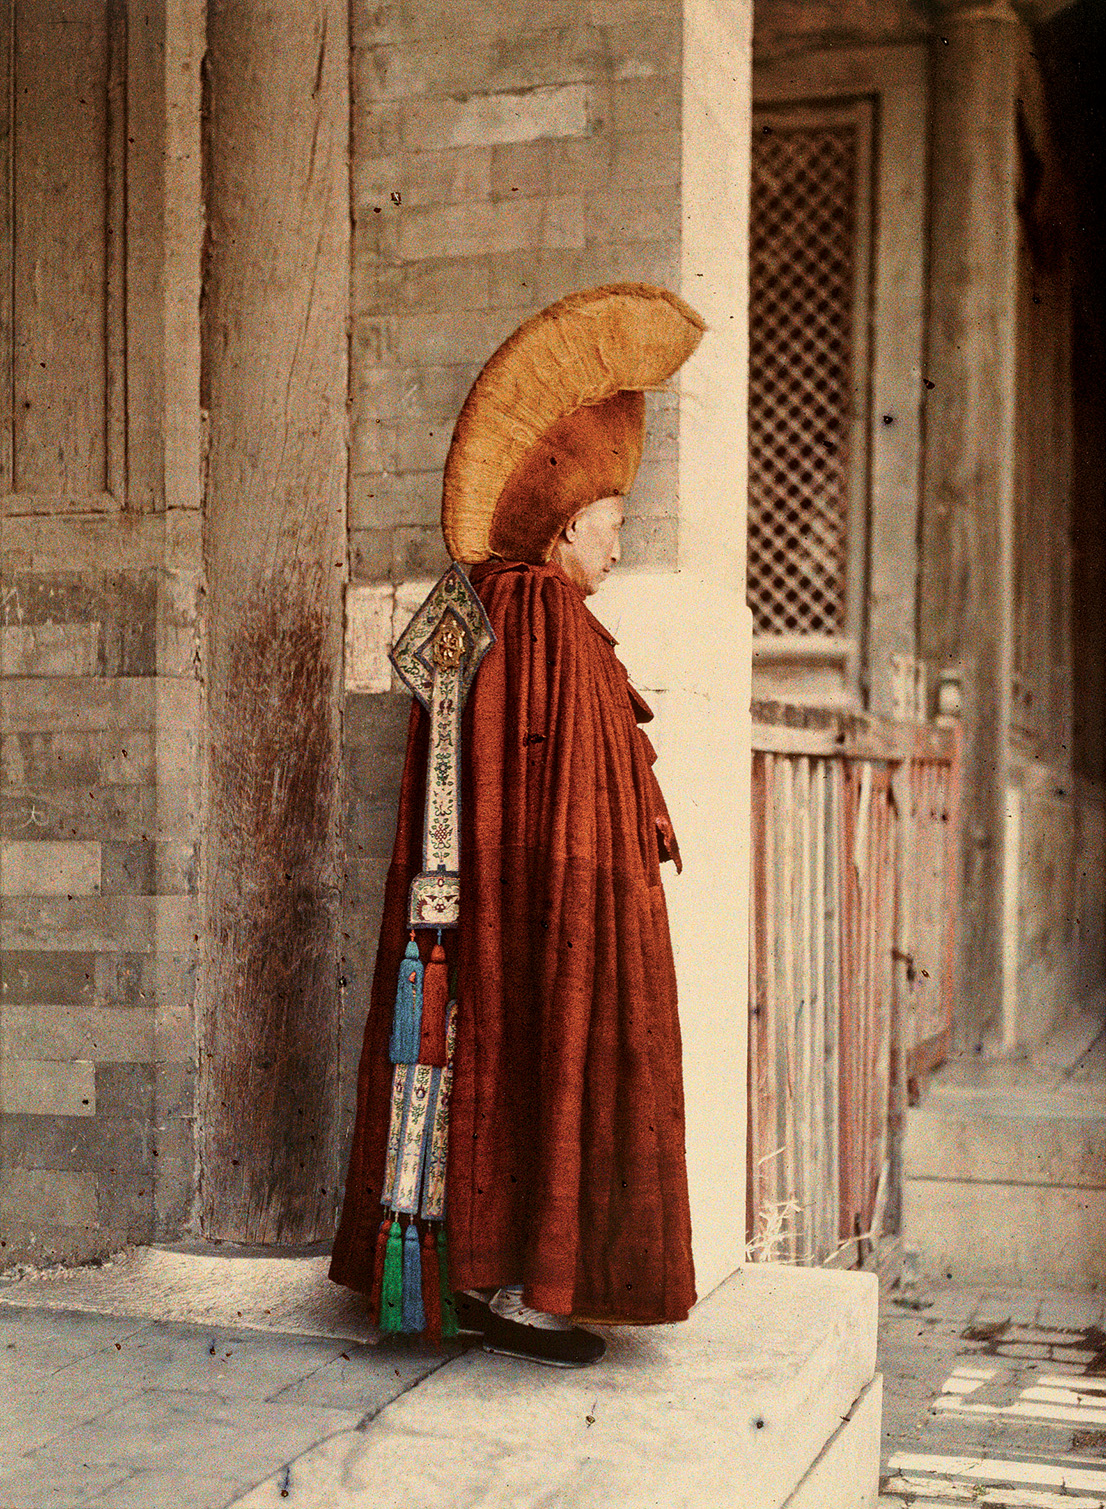 Albert Kahn, Les Archives de la Planète, Stéphane Passet. China, Peking, Palace of Heavenly Peace, Fourth Courtyard, eastern annex, a Buddhist Lama in ceremonial dress, 26 May 1913. © Musée Albert-Kahn, Département des Hauts-de-Seine.